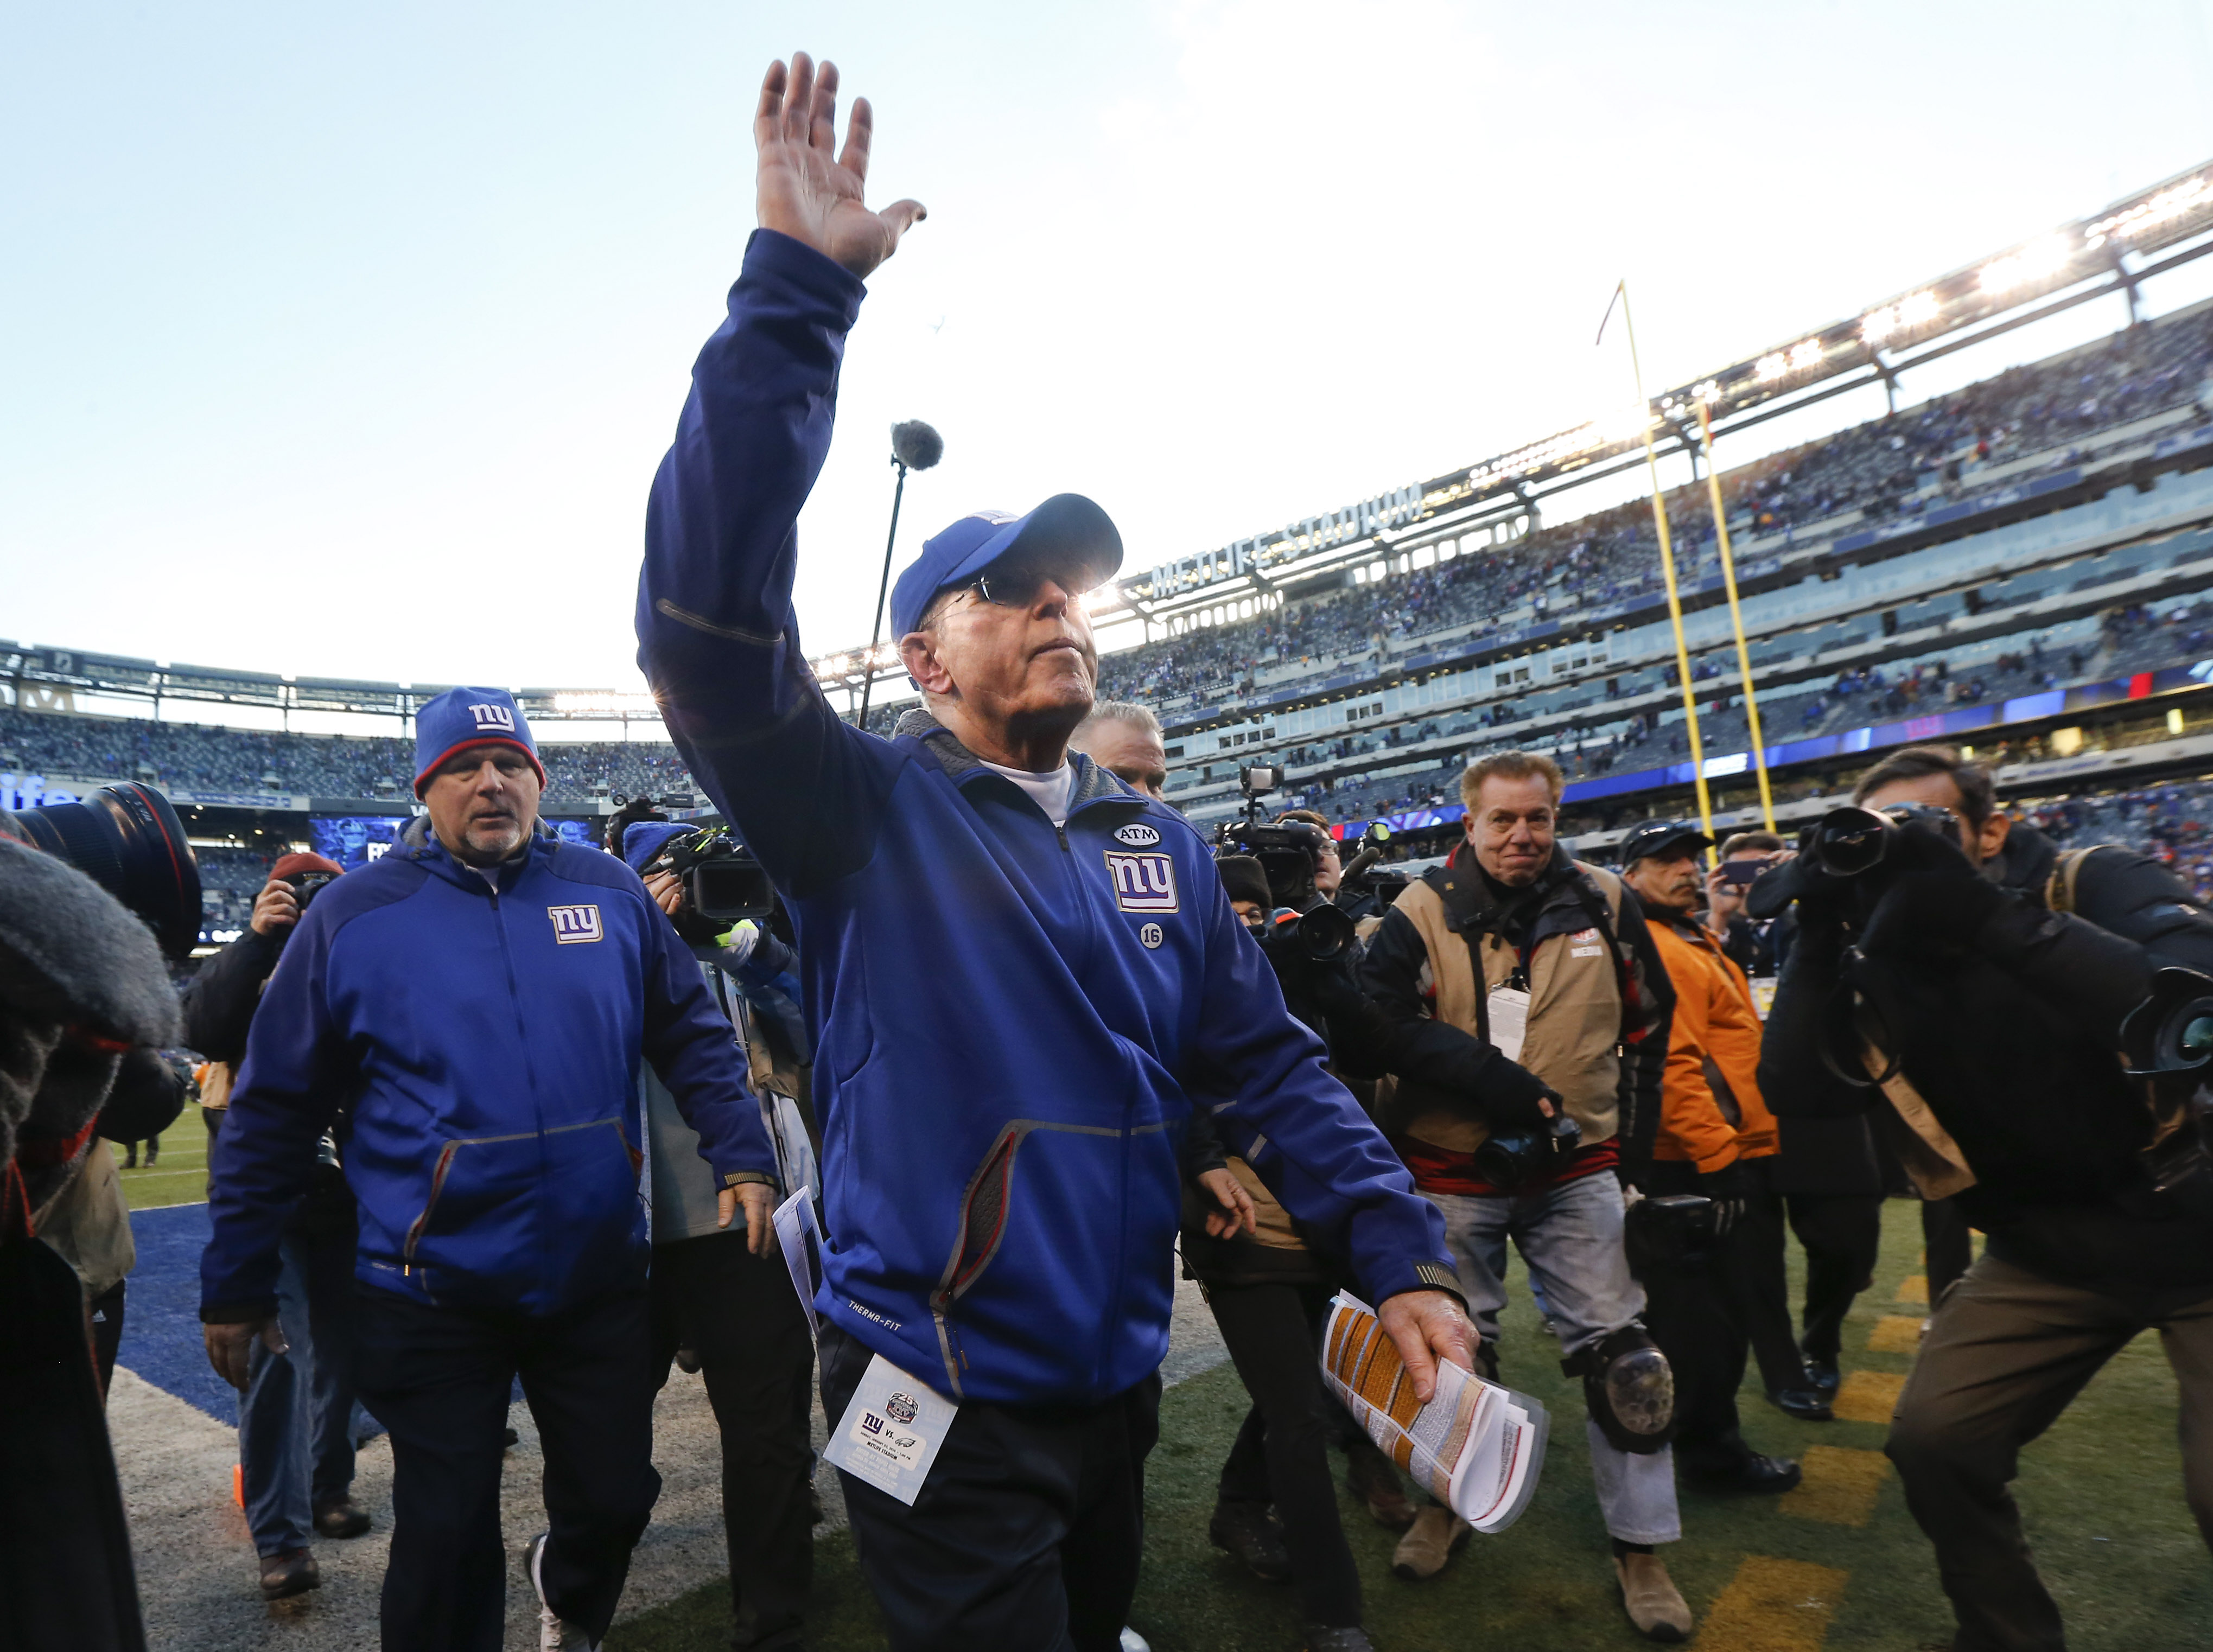 New York Giants head coach Tom Coughlin walks off the field after the Giants lost 35-30 to the Philadelphia Eagles in an NFL football game, Sunday, Jan. 3, 2016, in East Rutherford, N.J. (AP Photo/Julio Cortez)